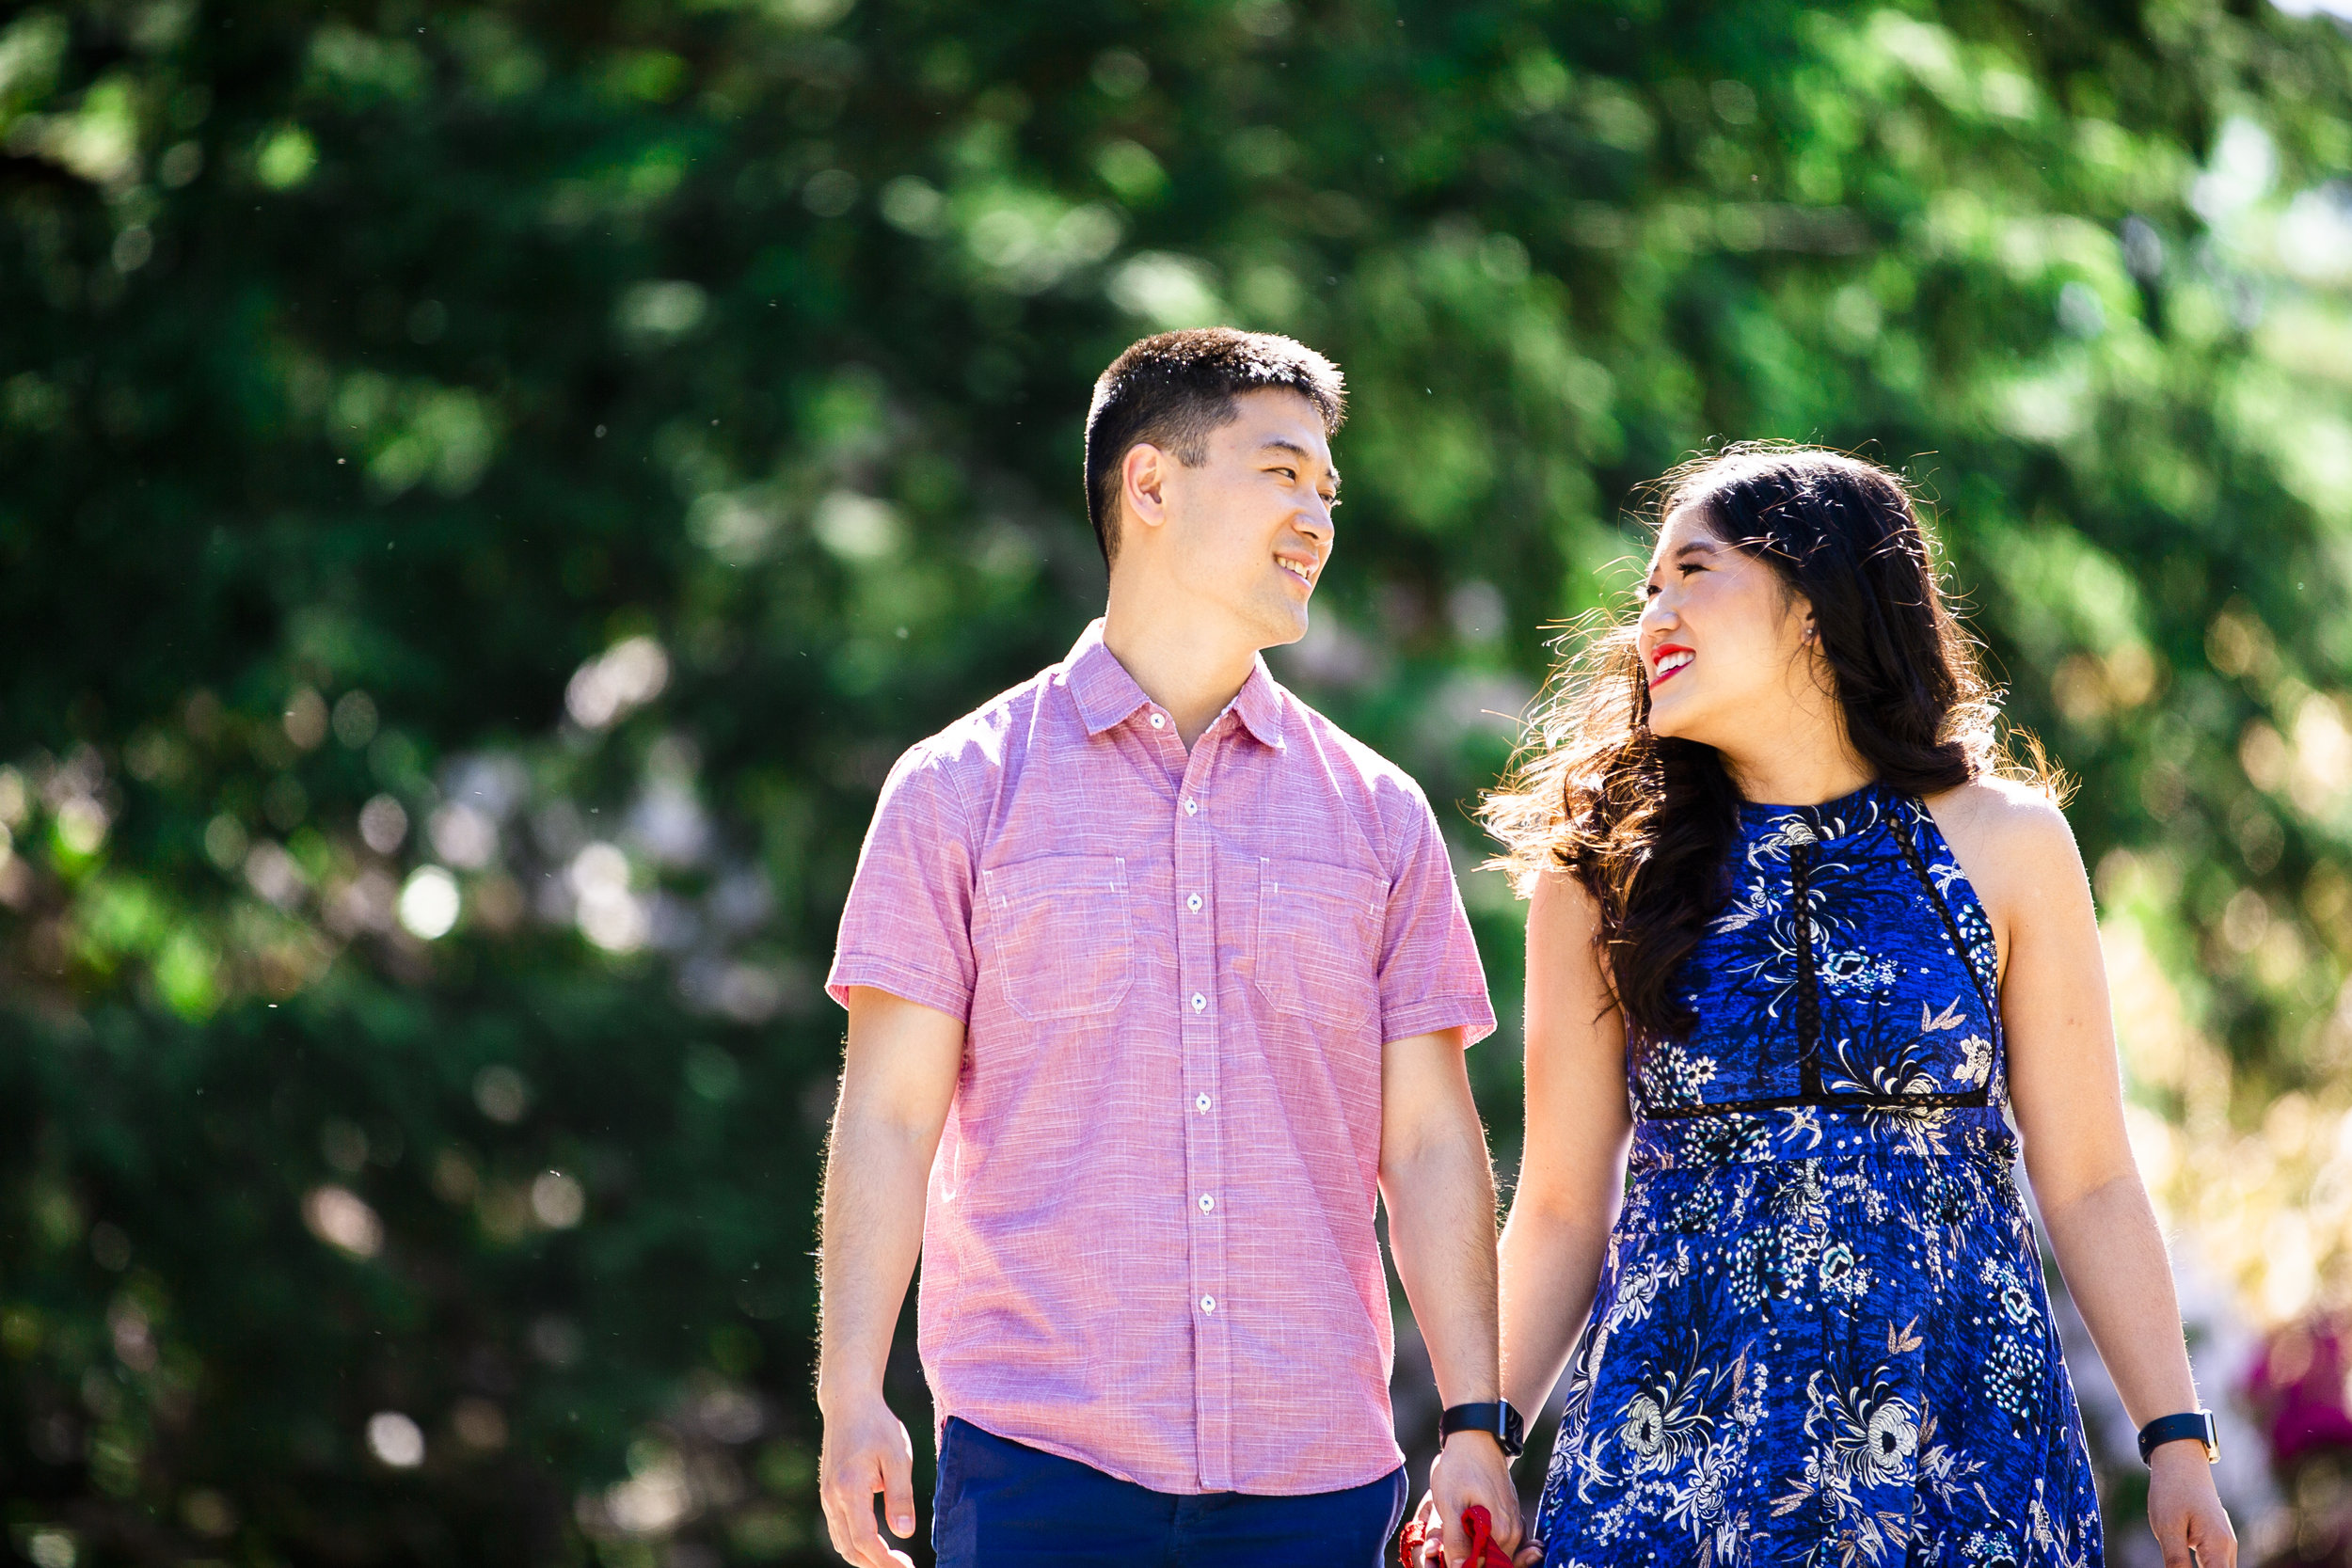 314A5917+Giovanni The Photographer+Best Boston Engagement Photography+Arnold Arboretum.jpg